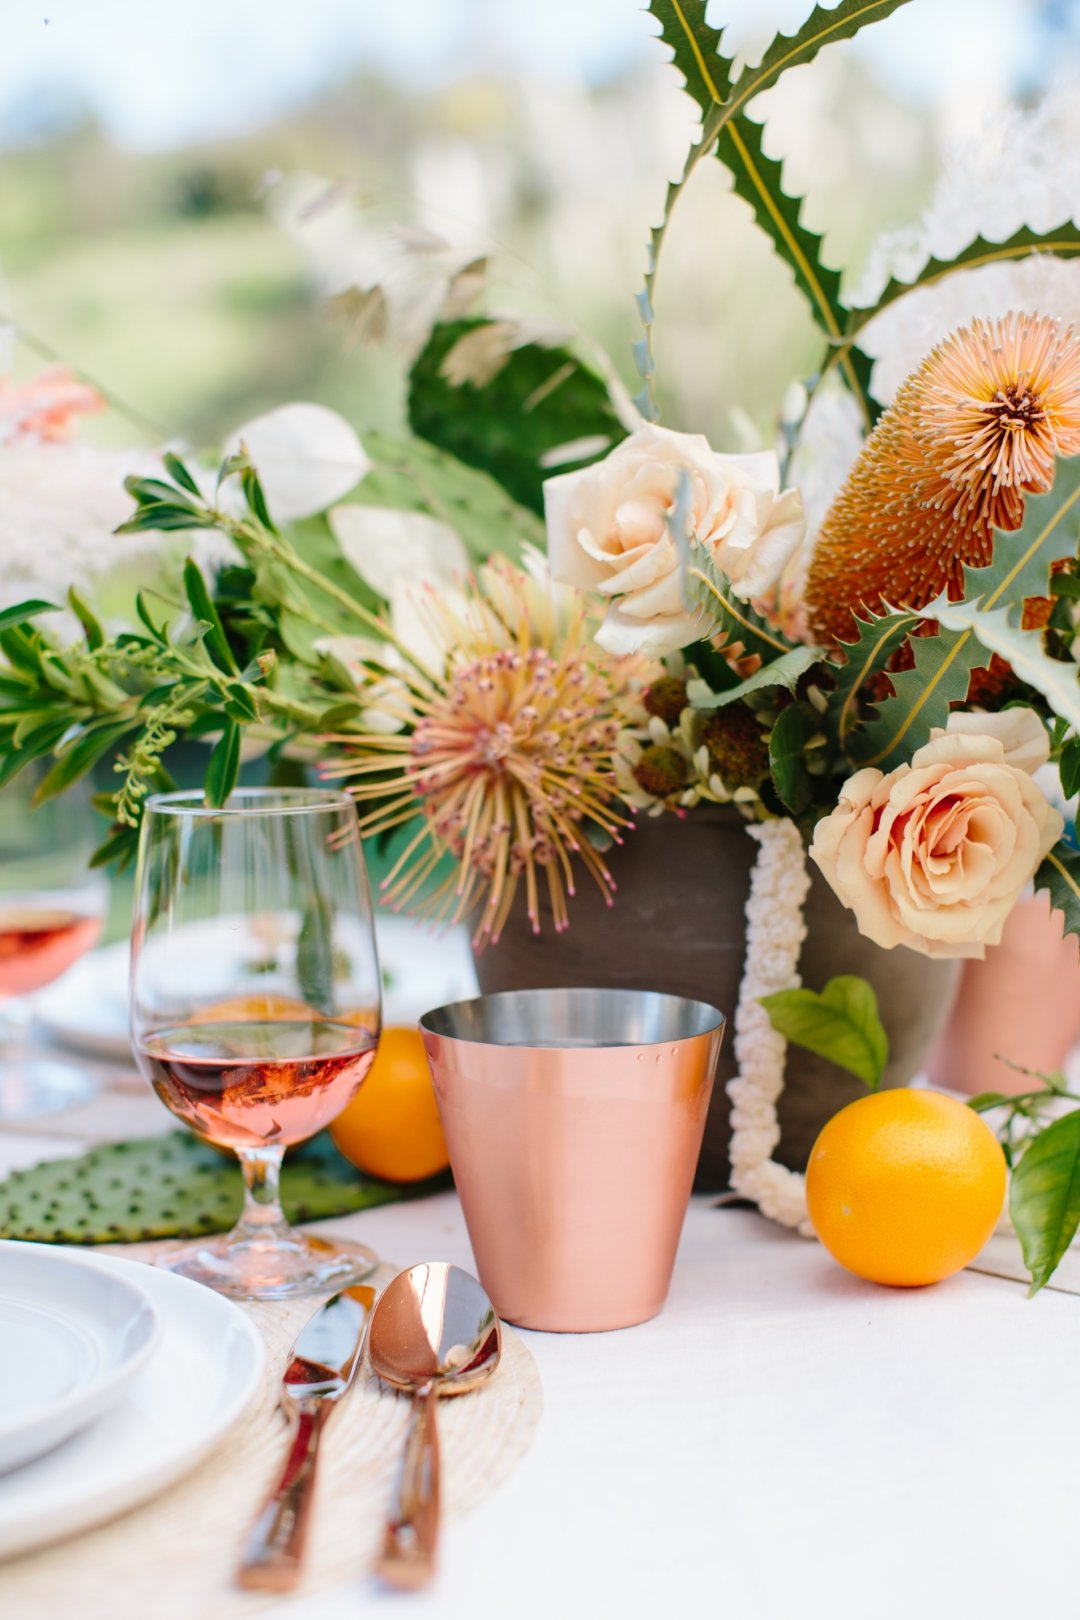 Copper glass and wine glass filled with rose wine next to place setting